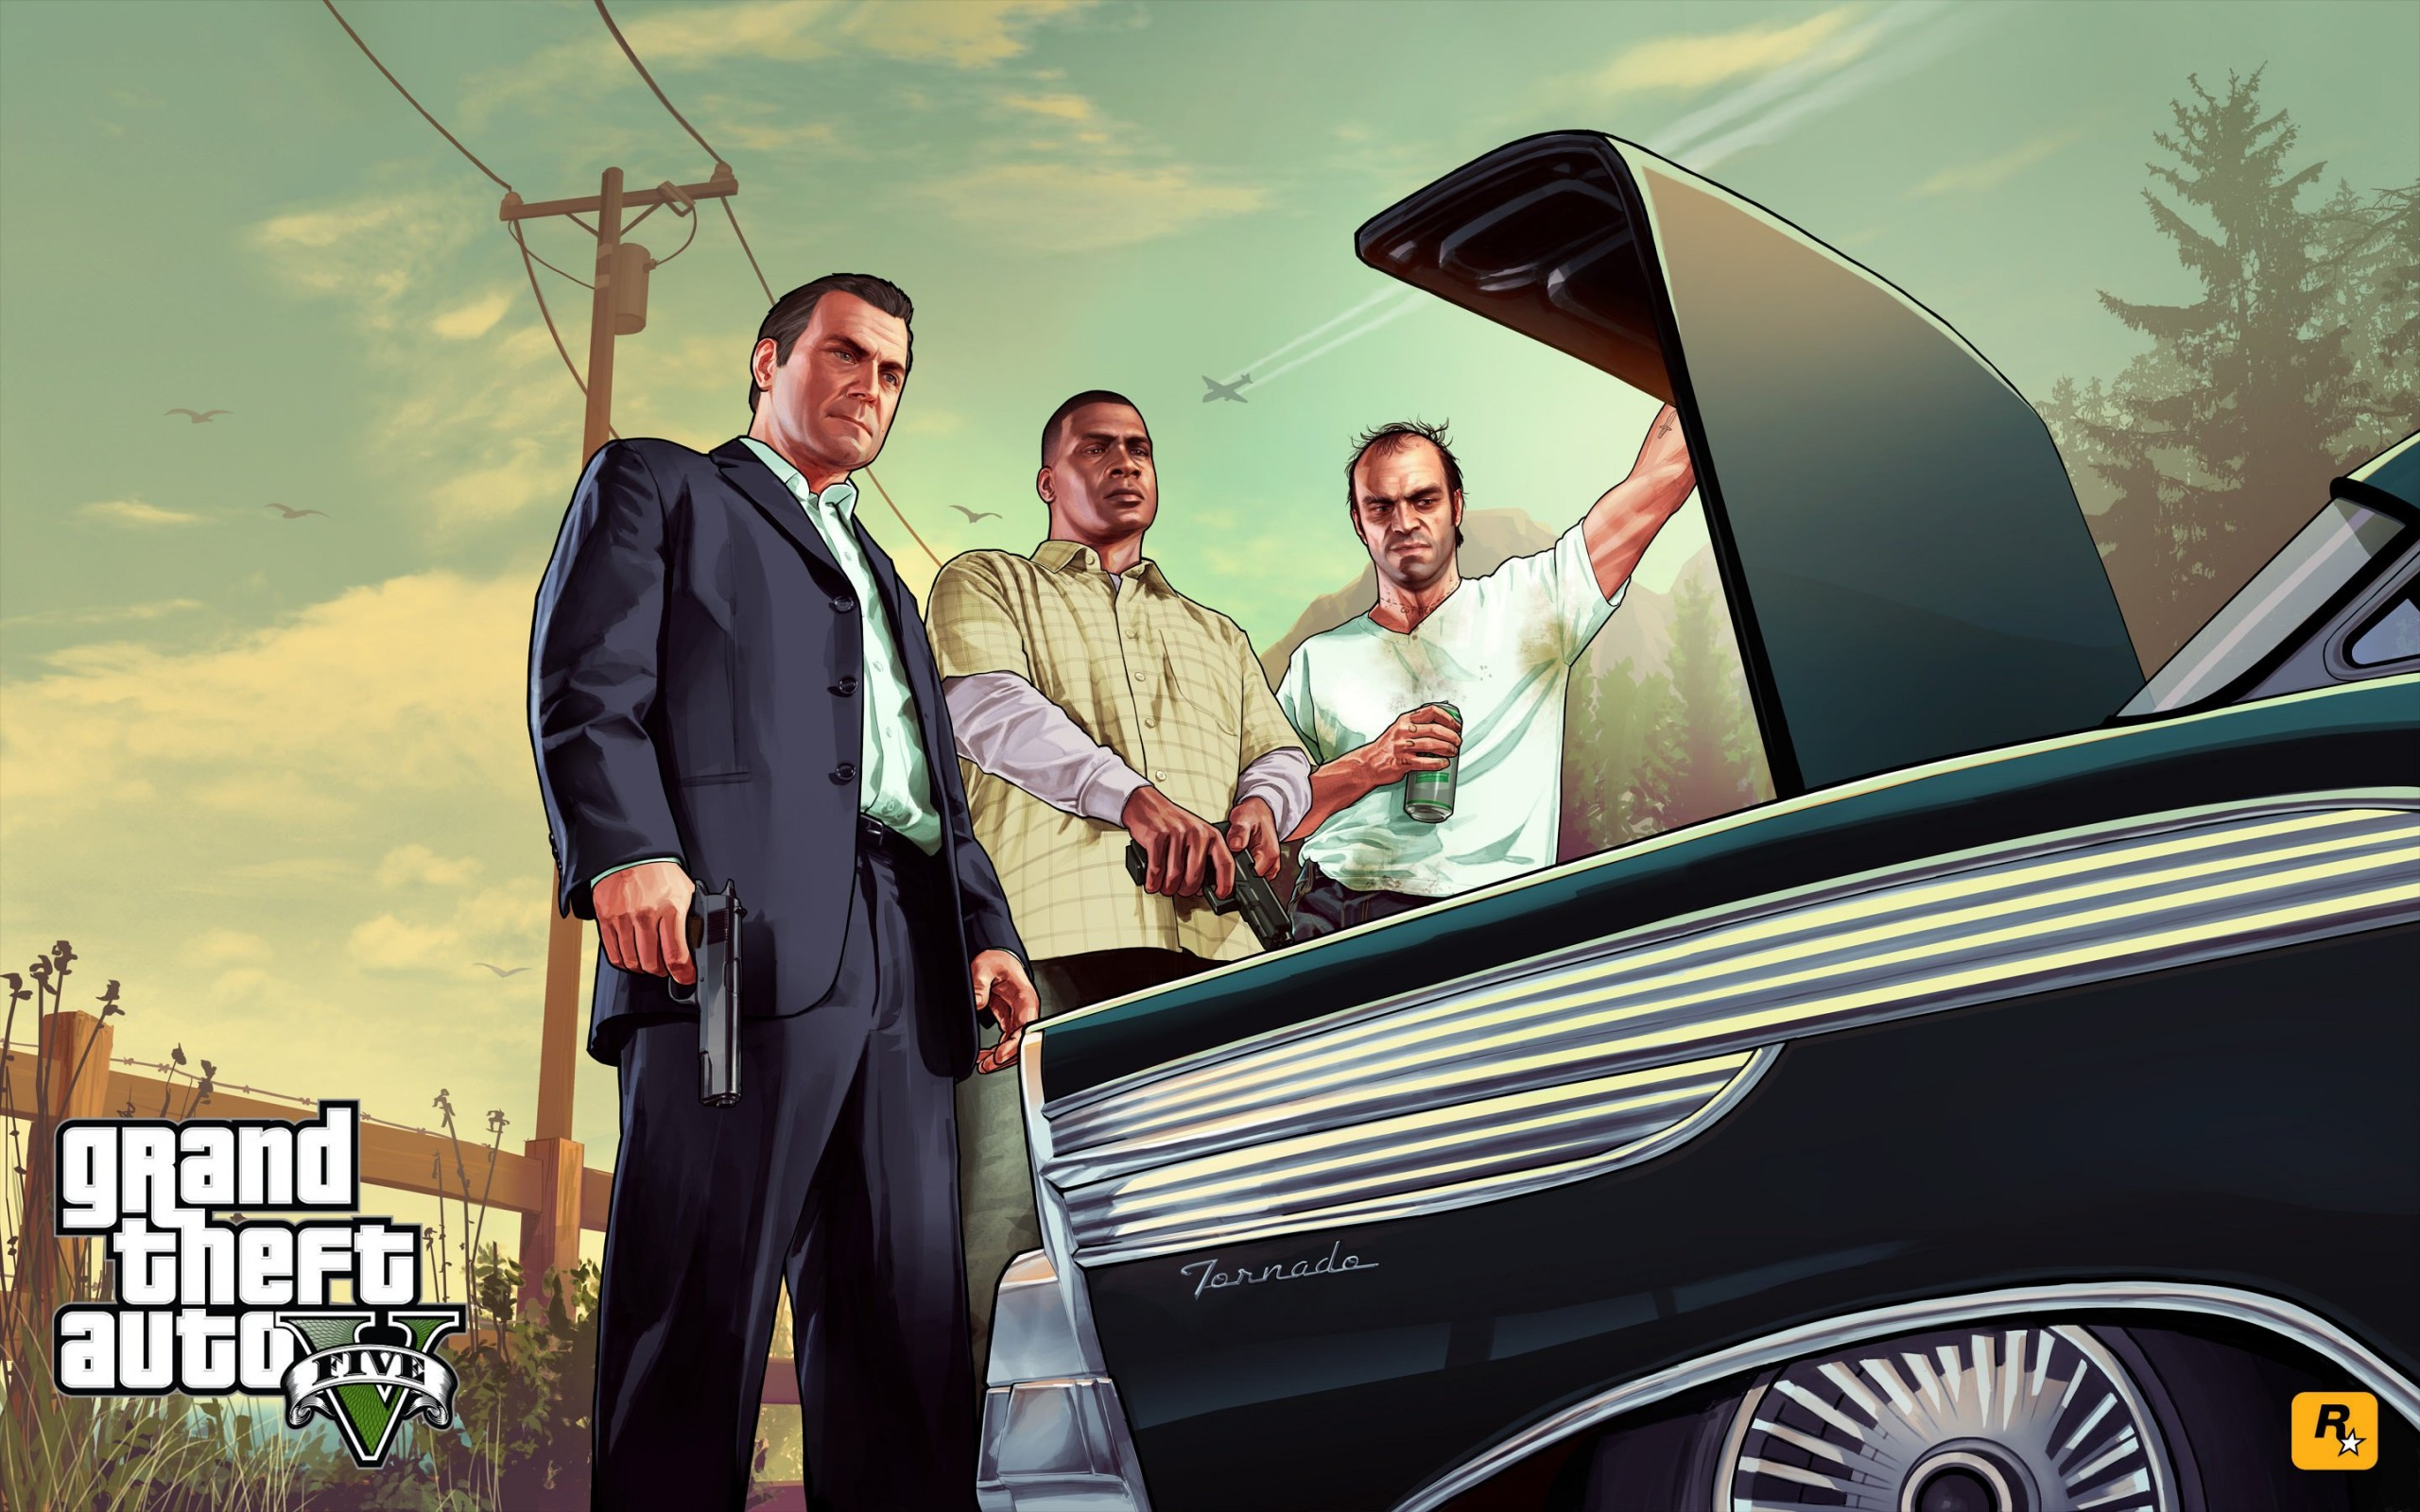 Gta 5 Characters Wallpaper for Desktop 2560x1600